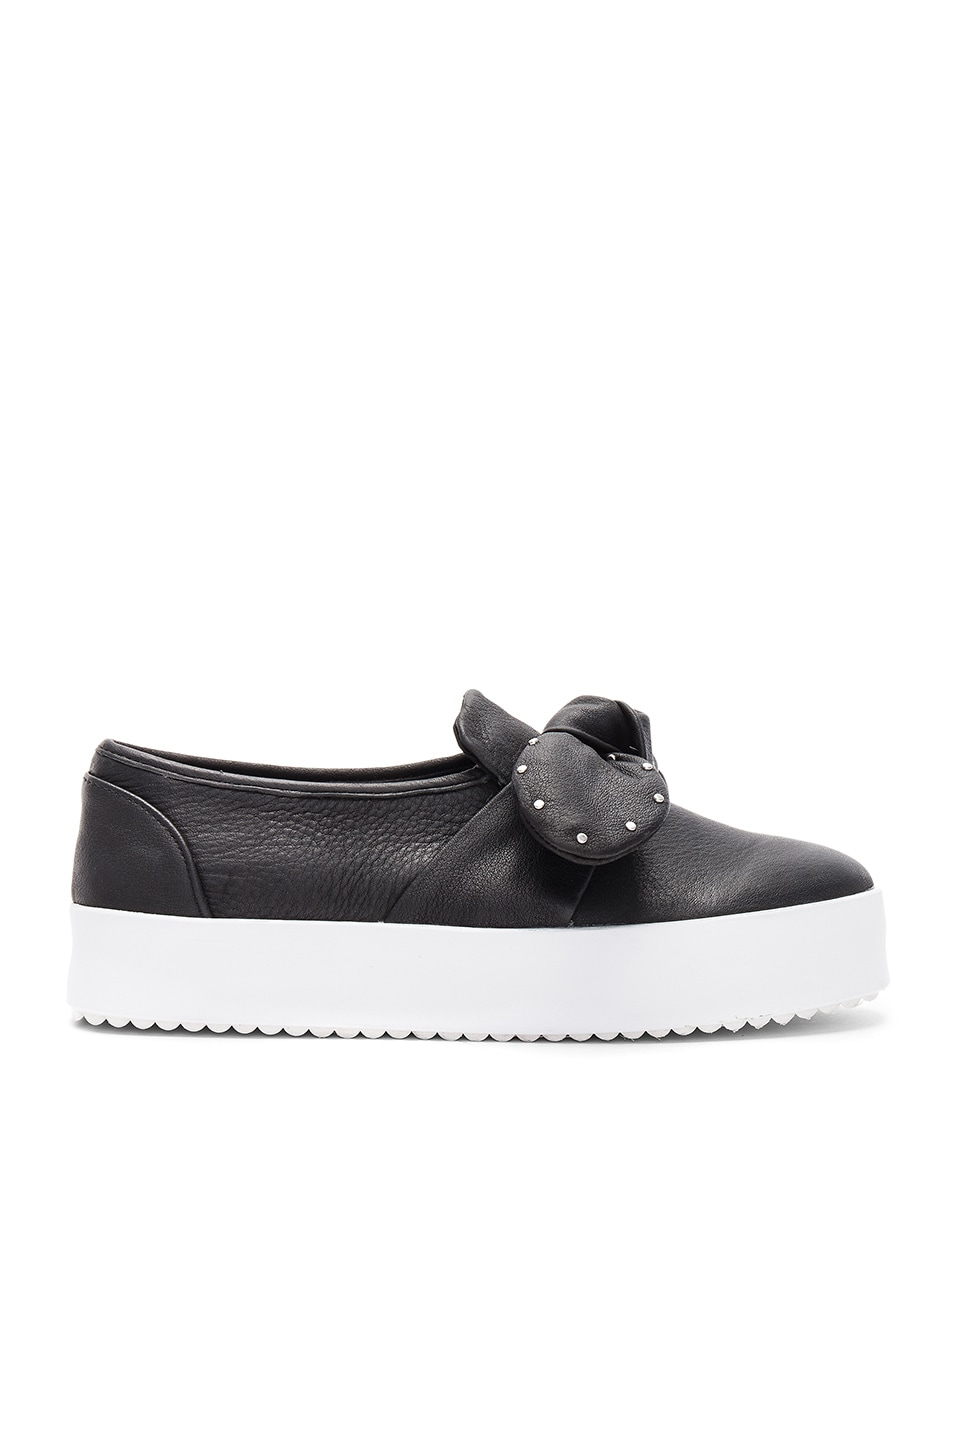 Stacey Studded Sneaker by Rebecca Minkoff